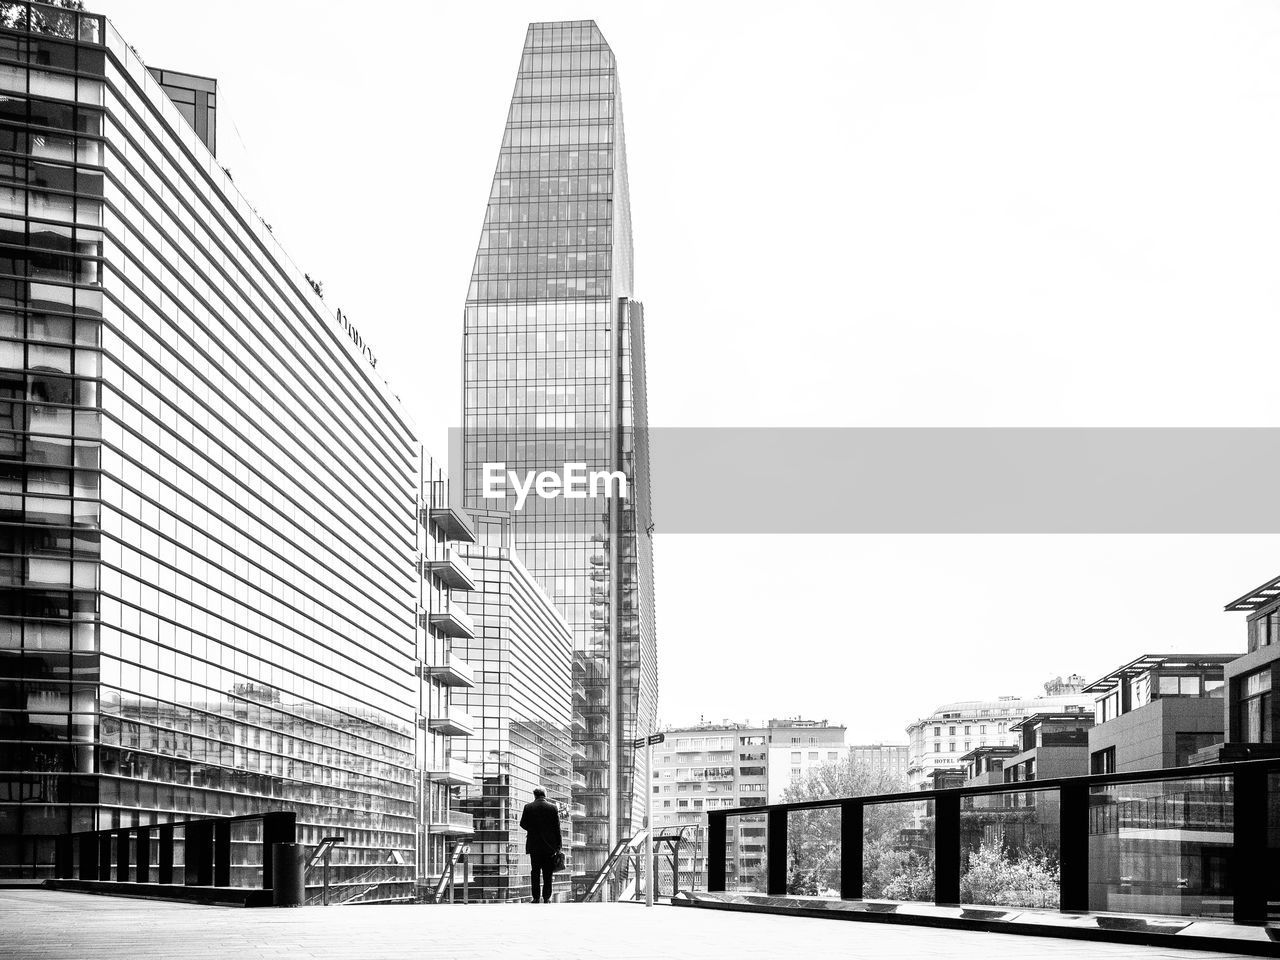 architecture, building exterior, built structure, skyscraper, city, modern, city life, outdoors, day, real people, sky, travel destinations, clear sky, cityscape